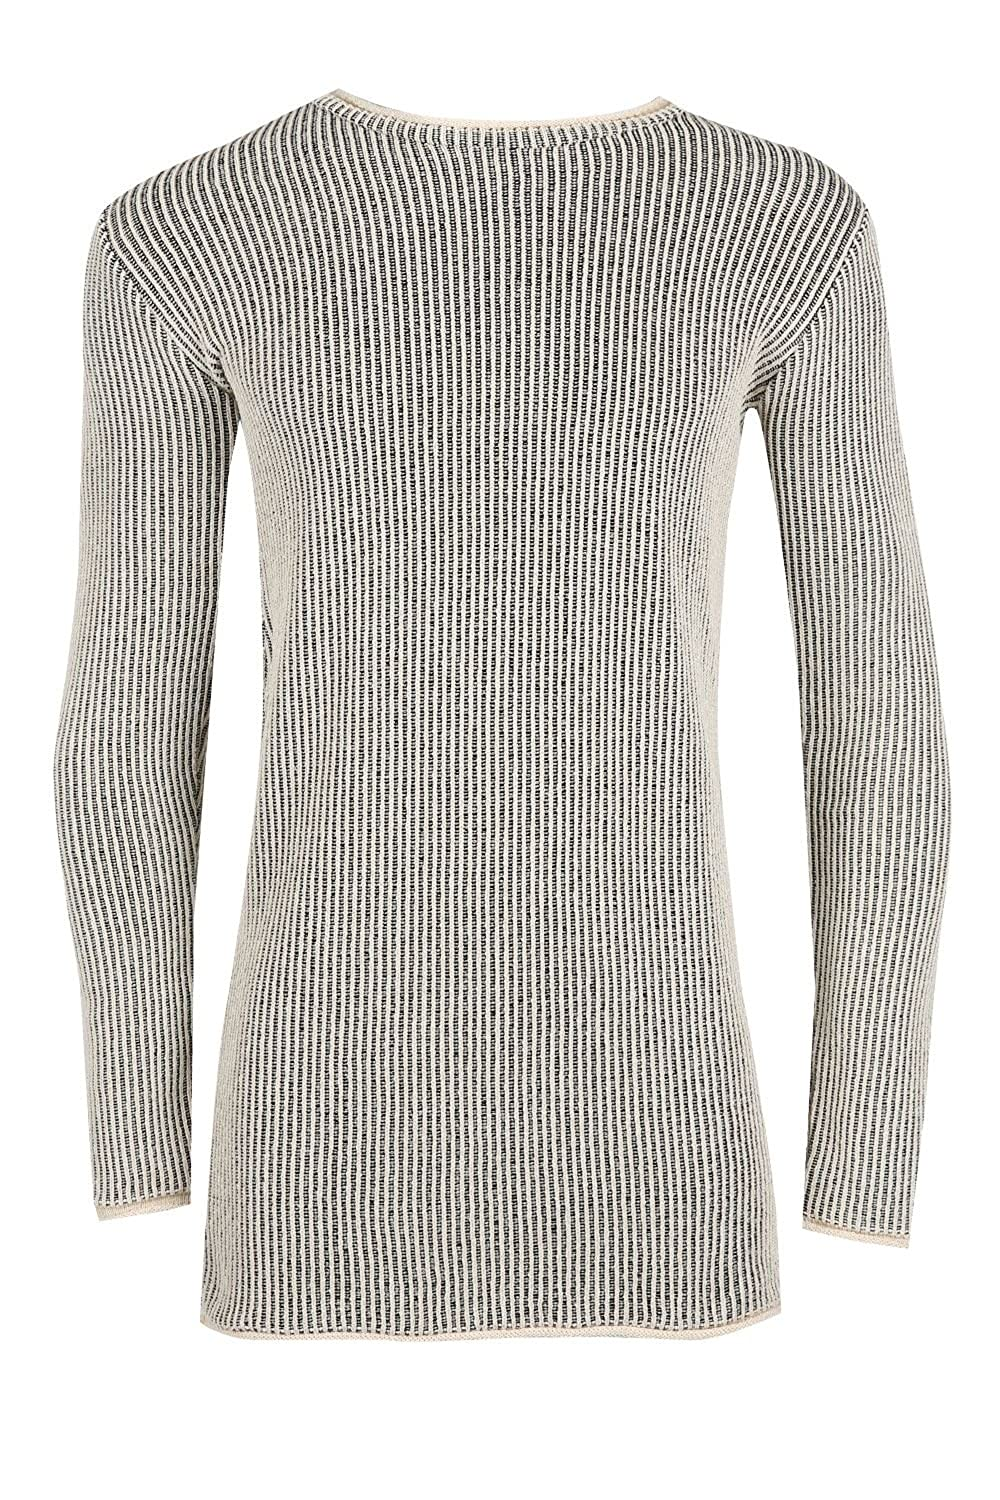 Fashion Star Mens Long Sleeve Longline Crew Neck Chunky Contrast Ribbed Knitted Pullover Jumper Top